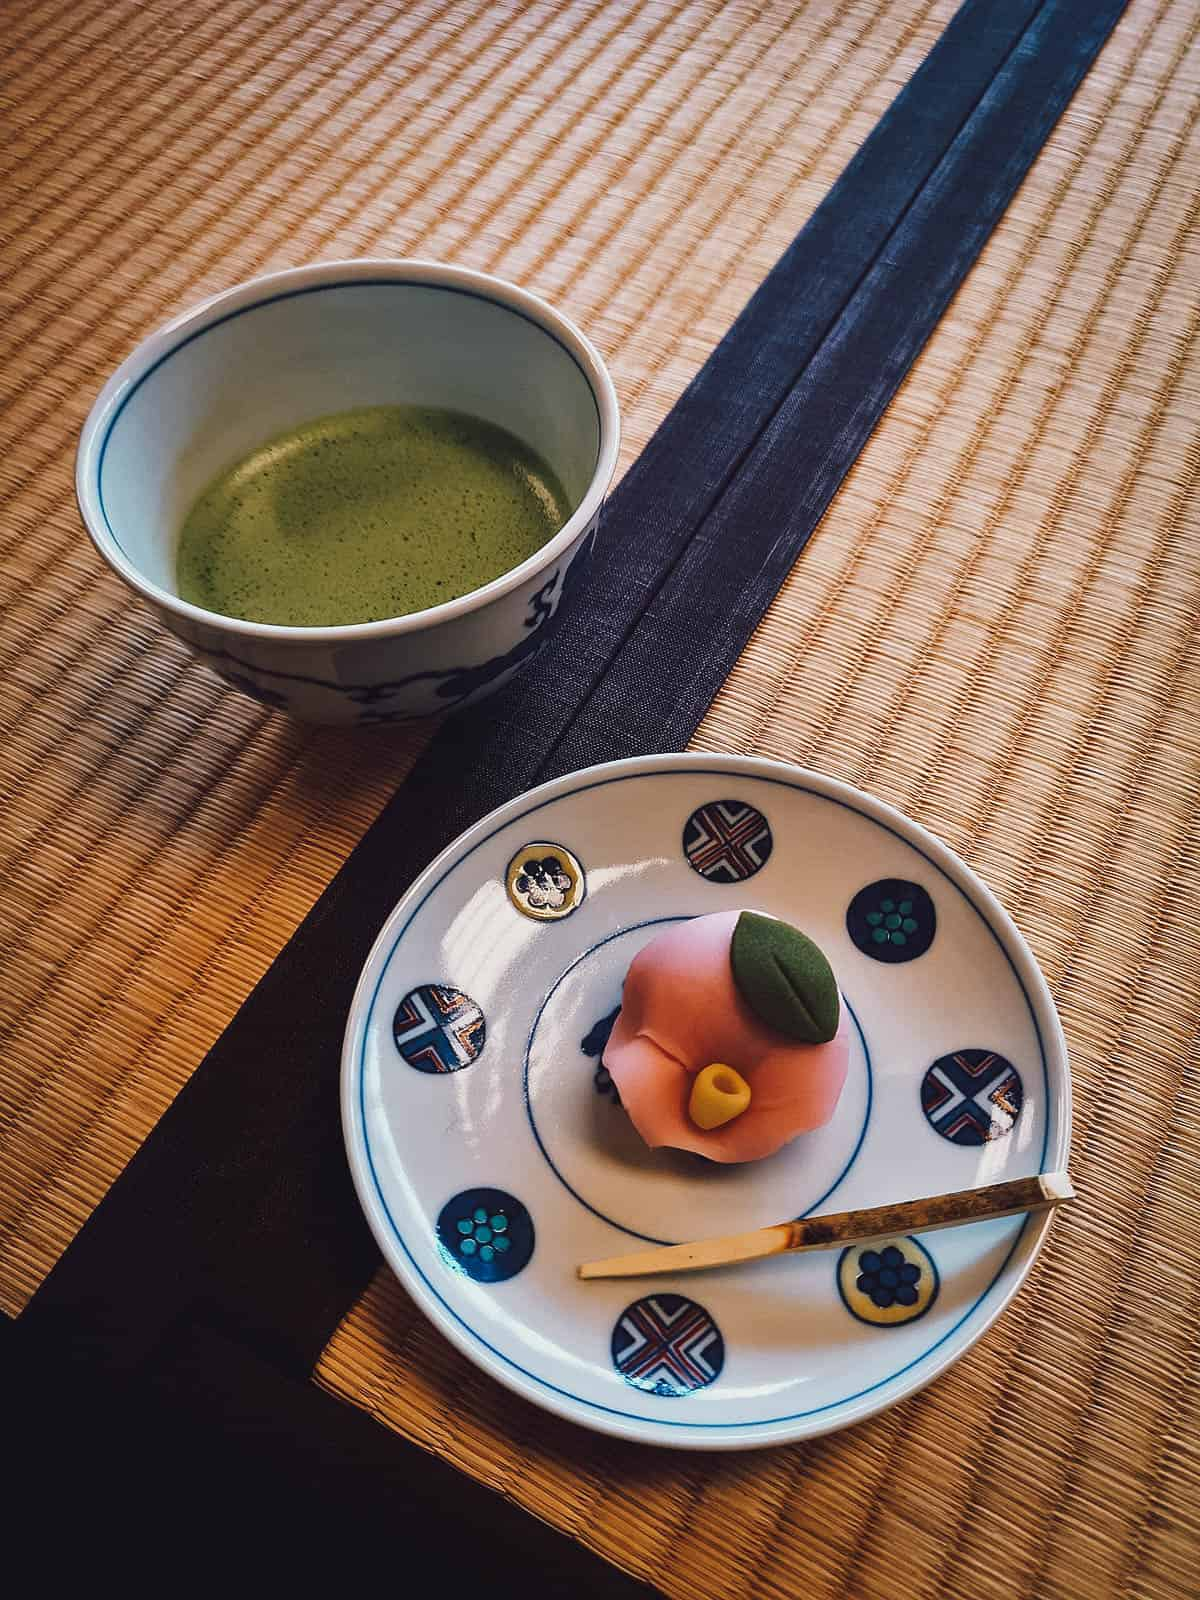 Matcha tea with wagashi